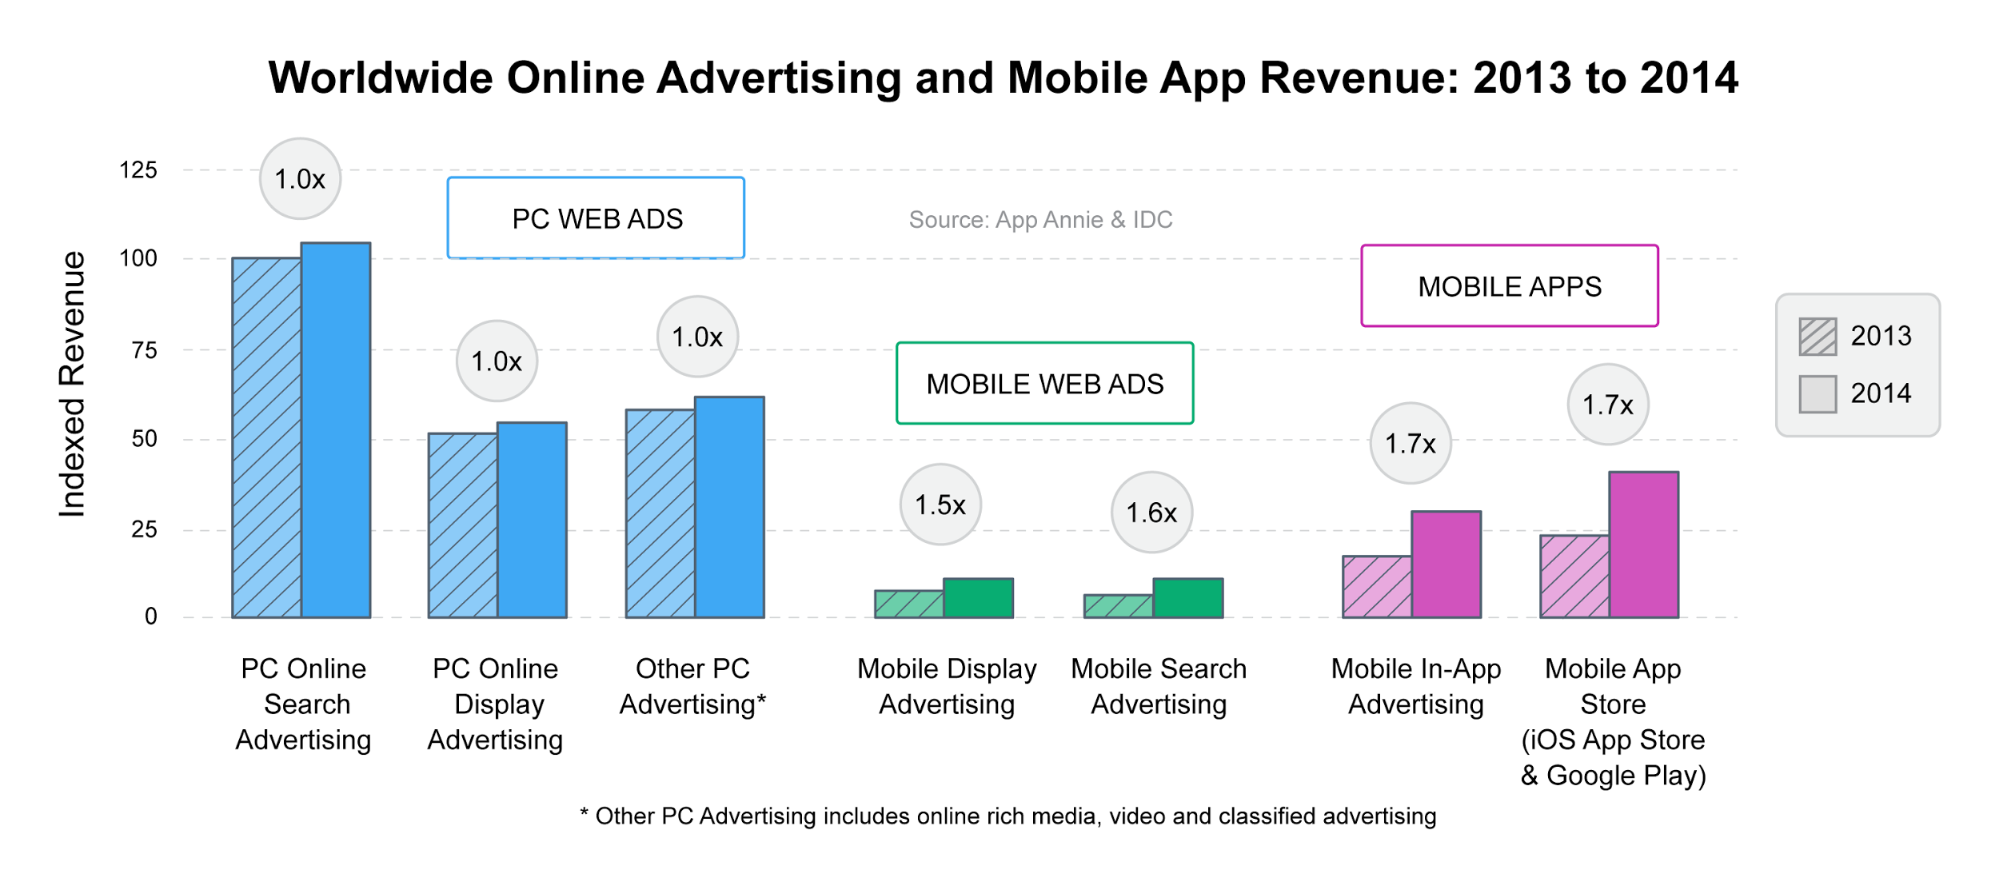 AA IDC Mobile App Advertising and Monetization Trends 2013-2018 Sample